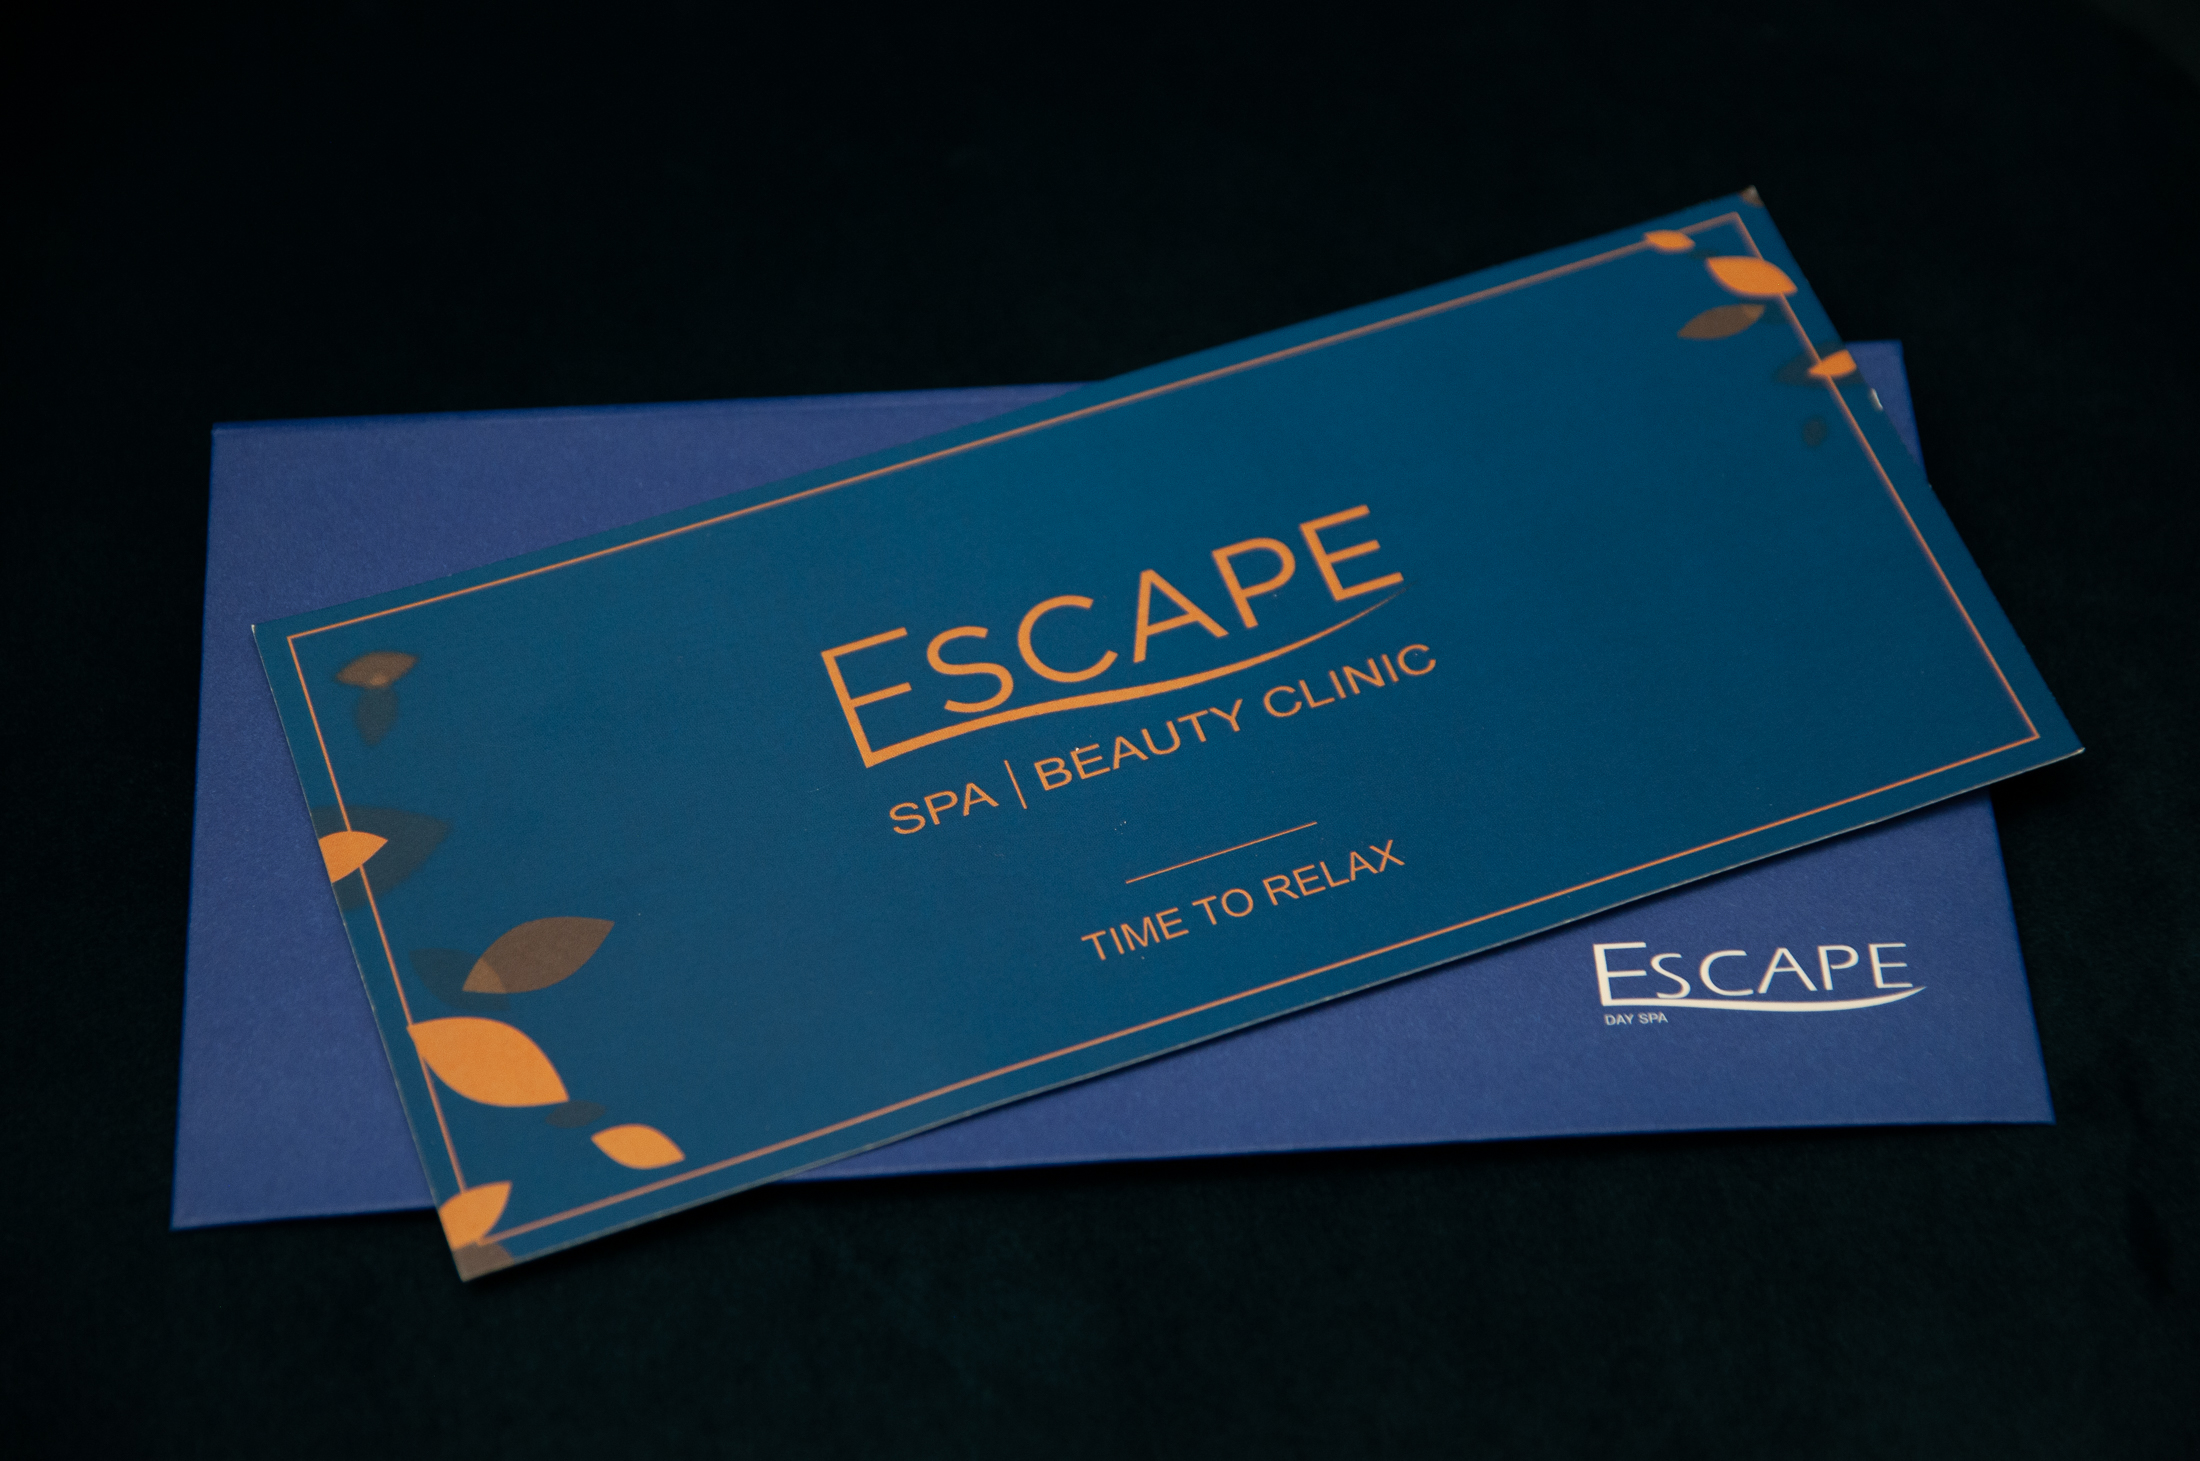 Your Escape Spa | Beauty Clinic, we have beautiful Gift Vouchers for all our treatments. photo 1